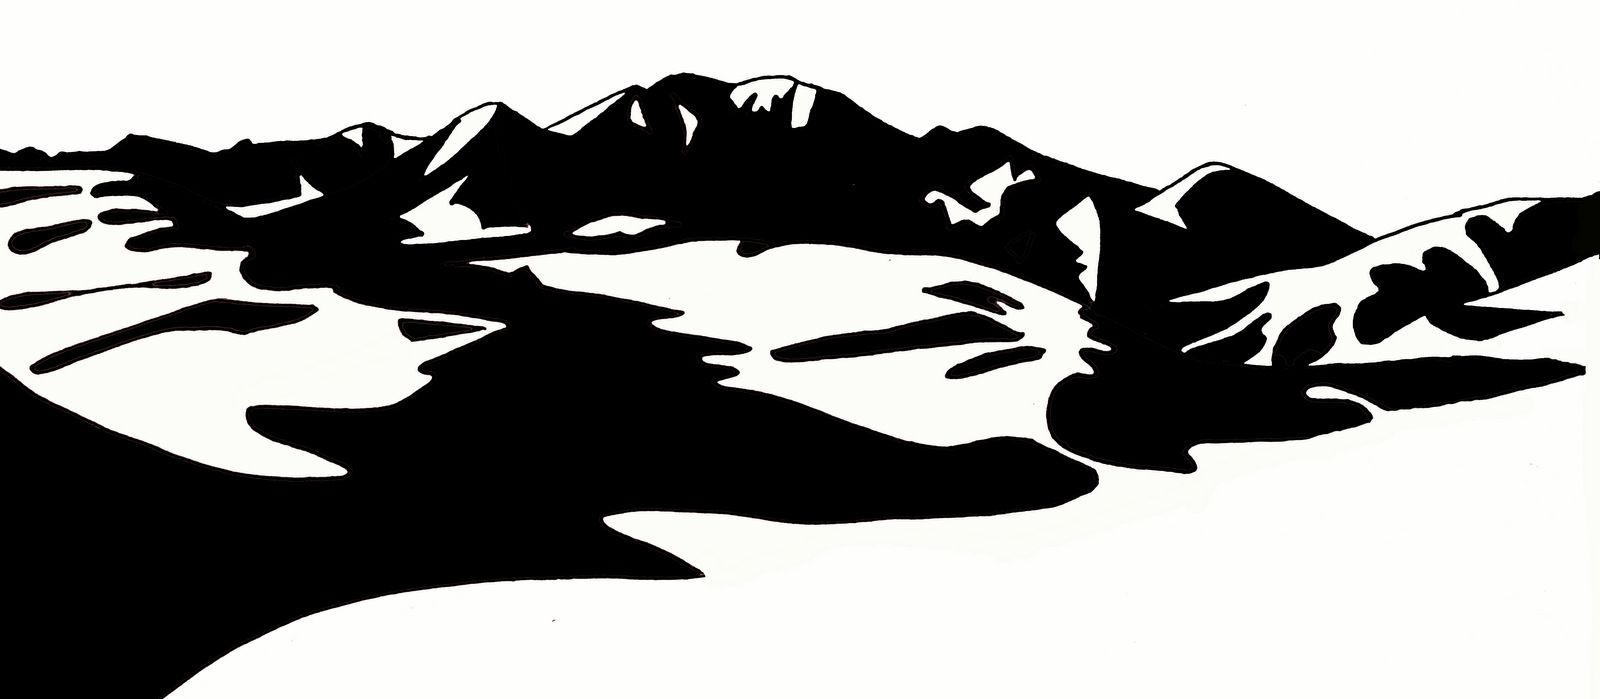 Original design logo for Great Sand Dunes National Park in